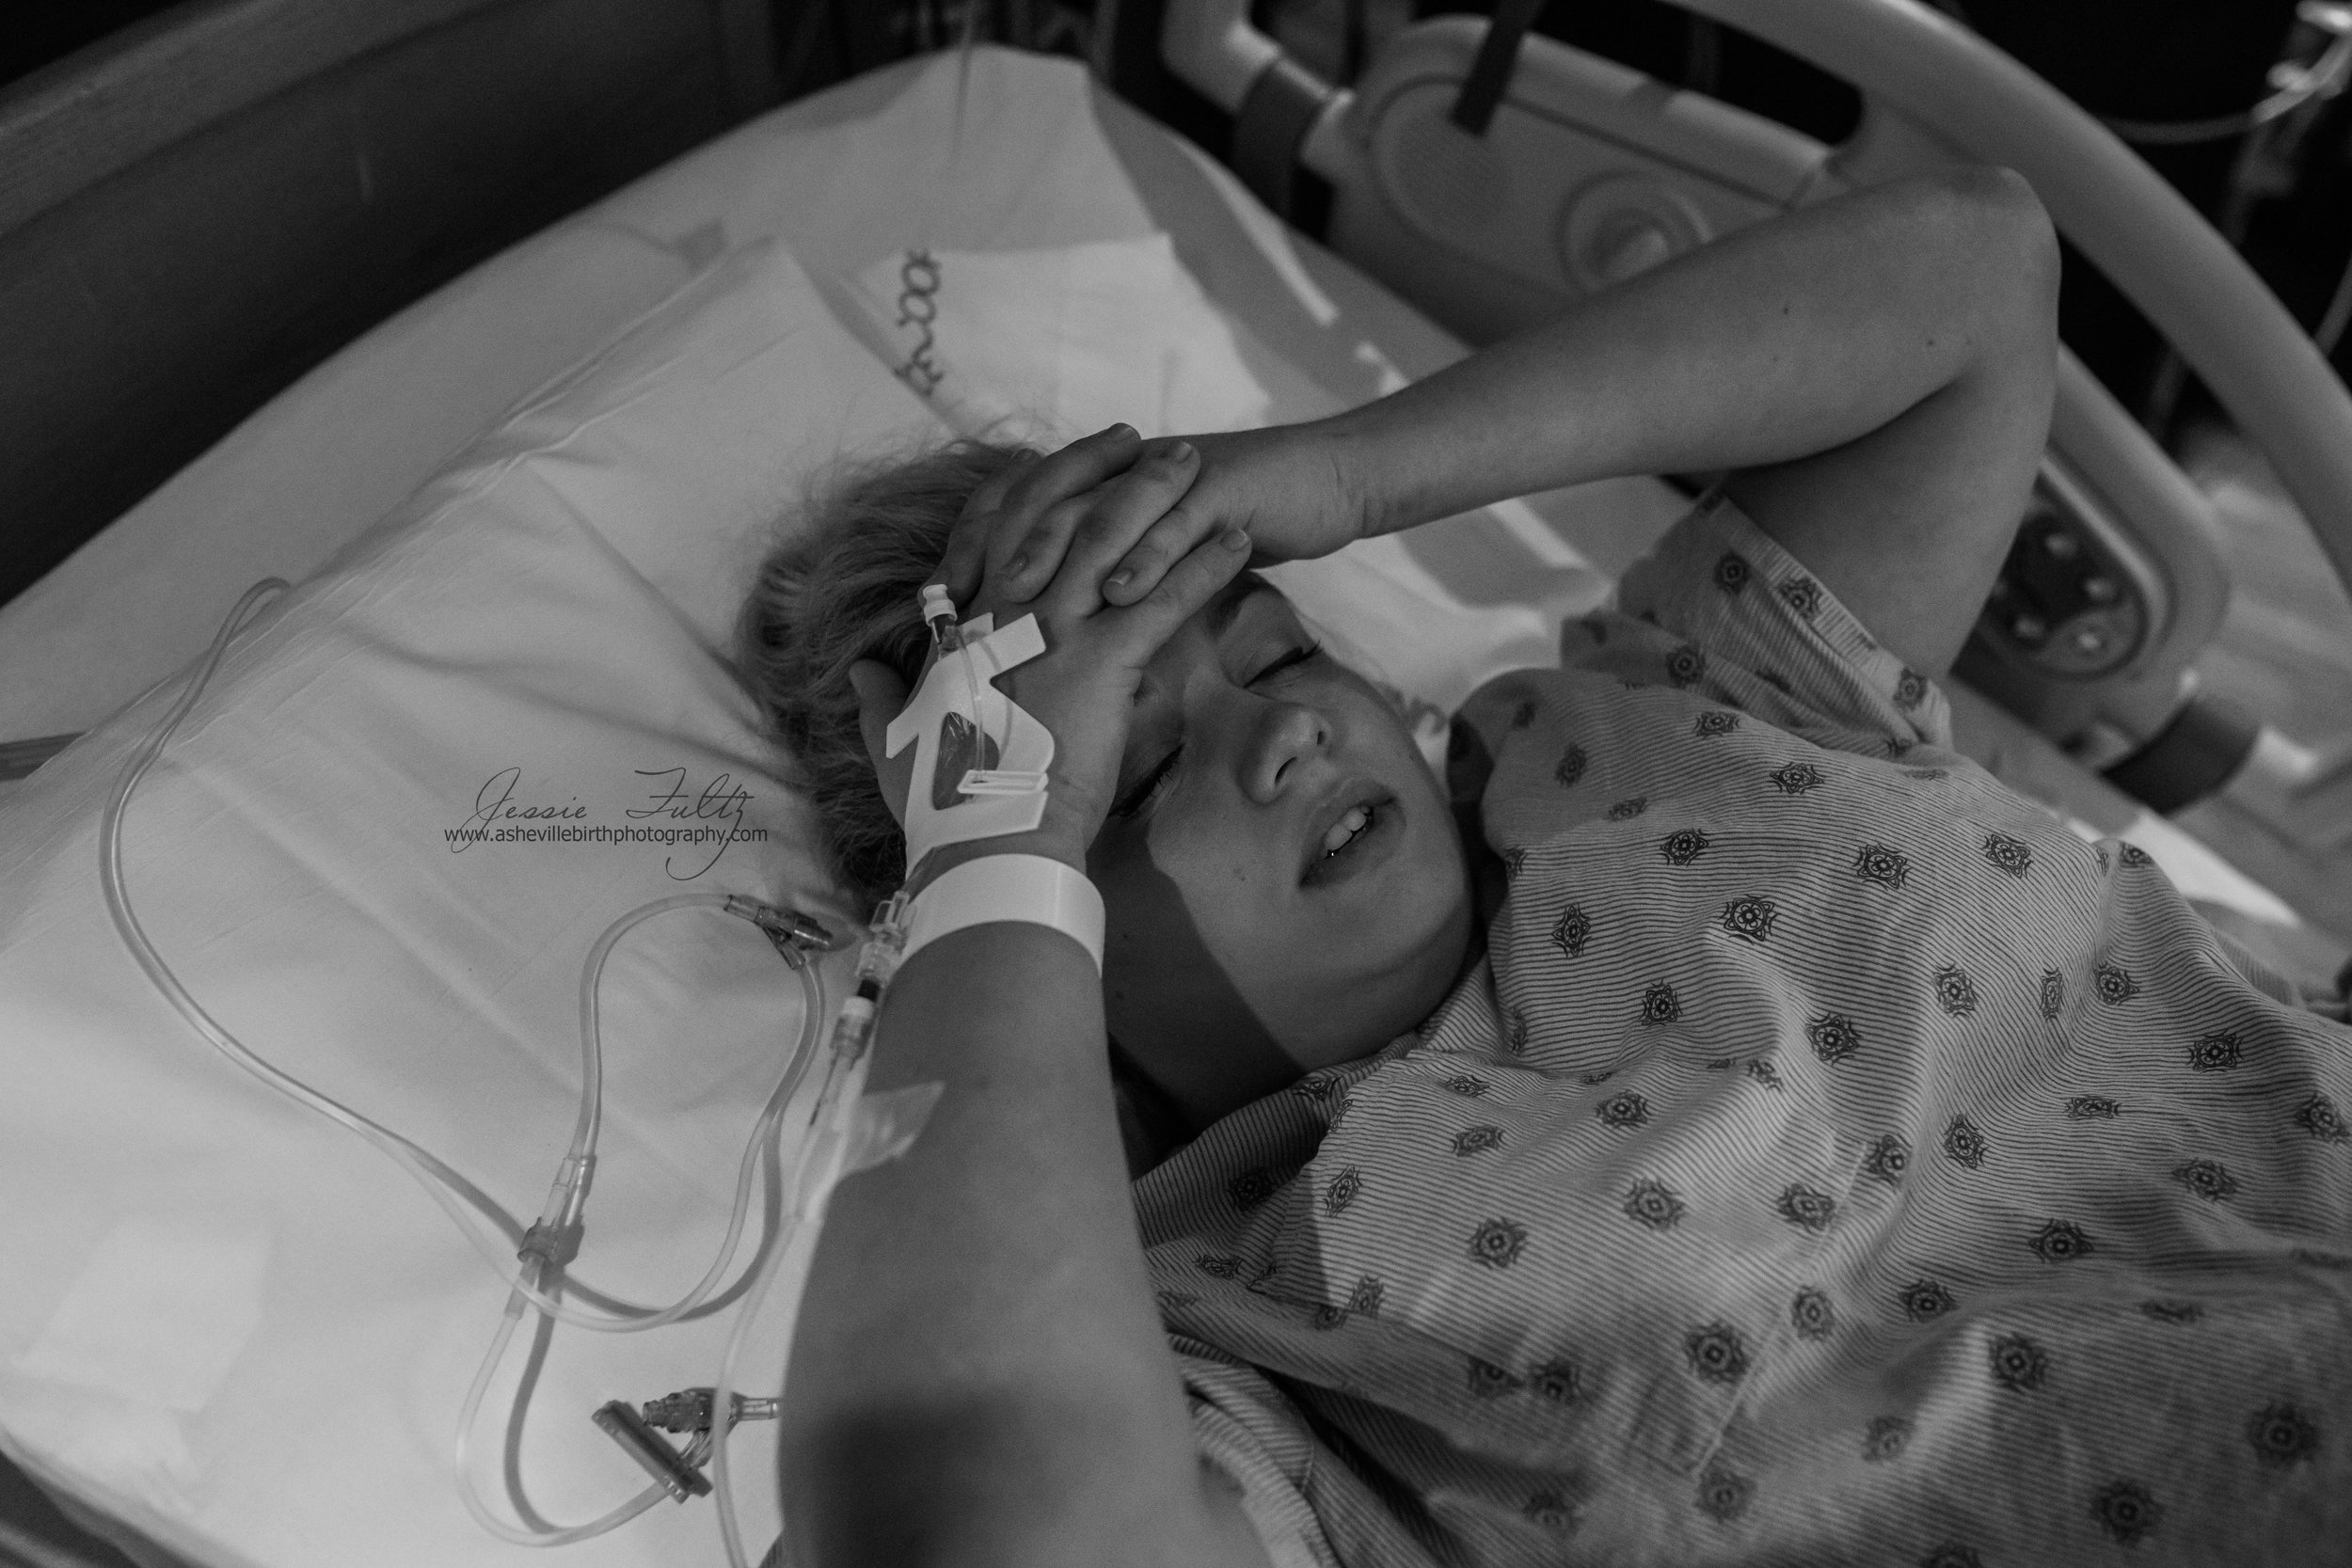 a laboring woman clasping her hands and resting them on her forehead during a contraction